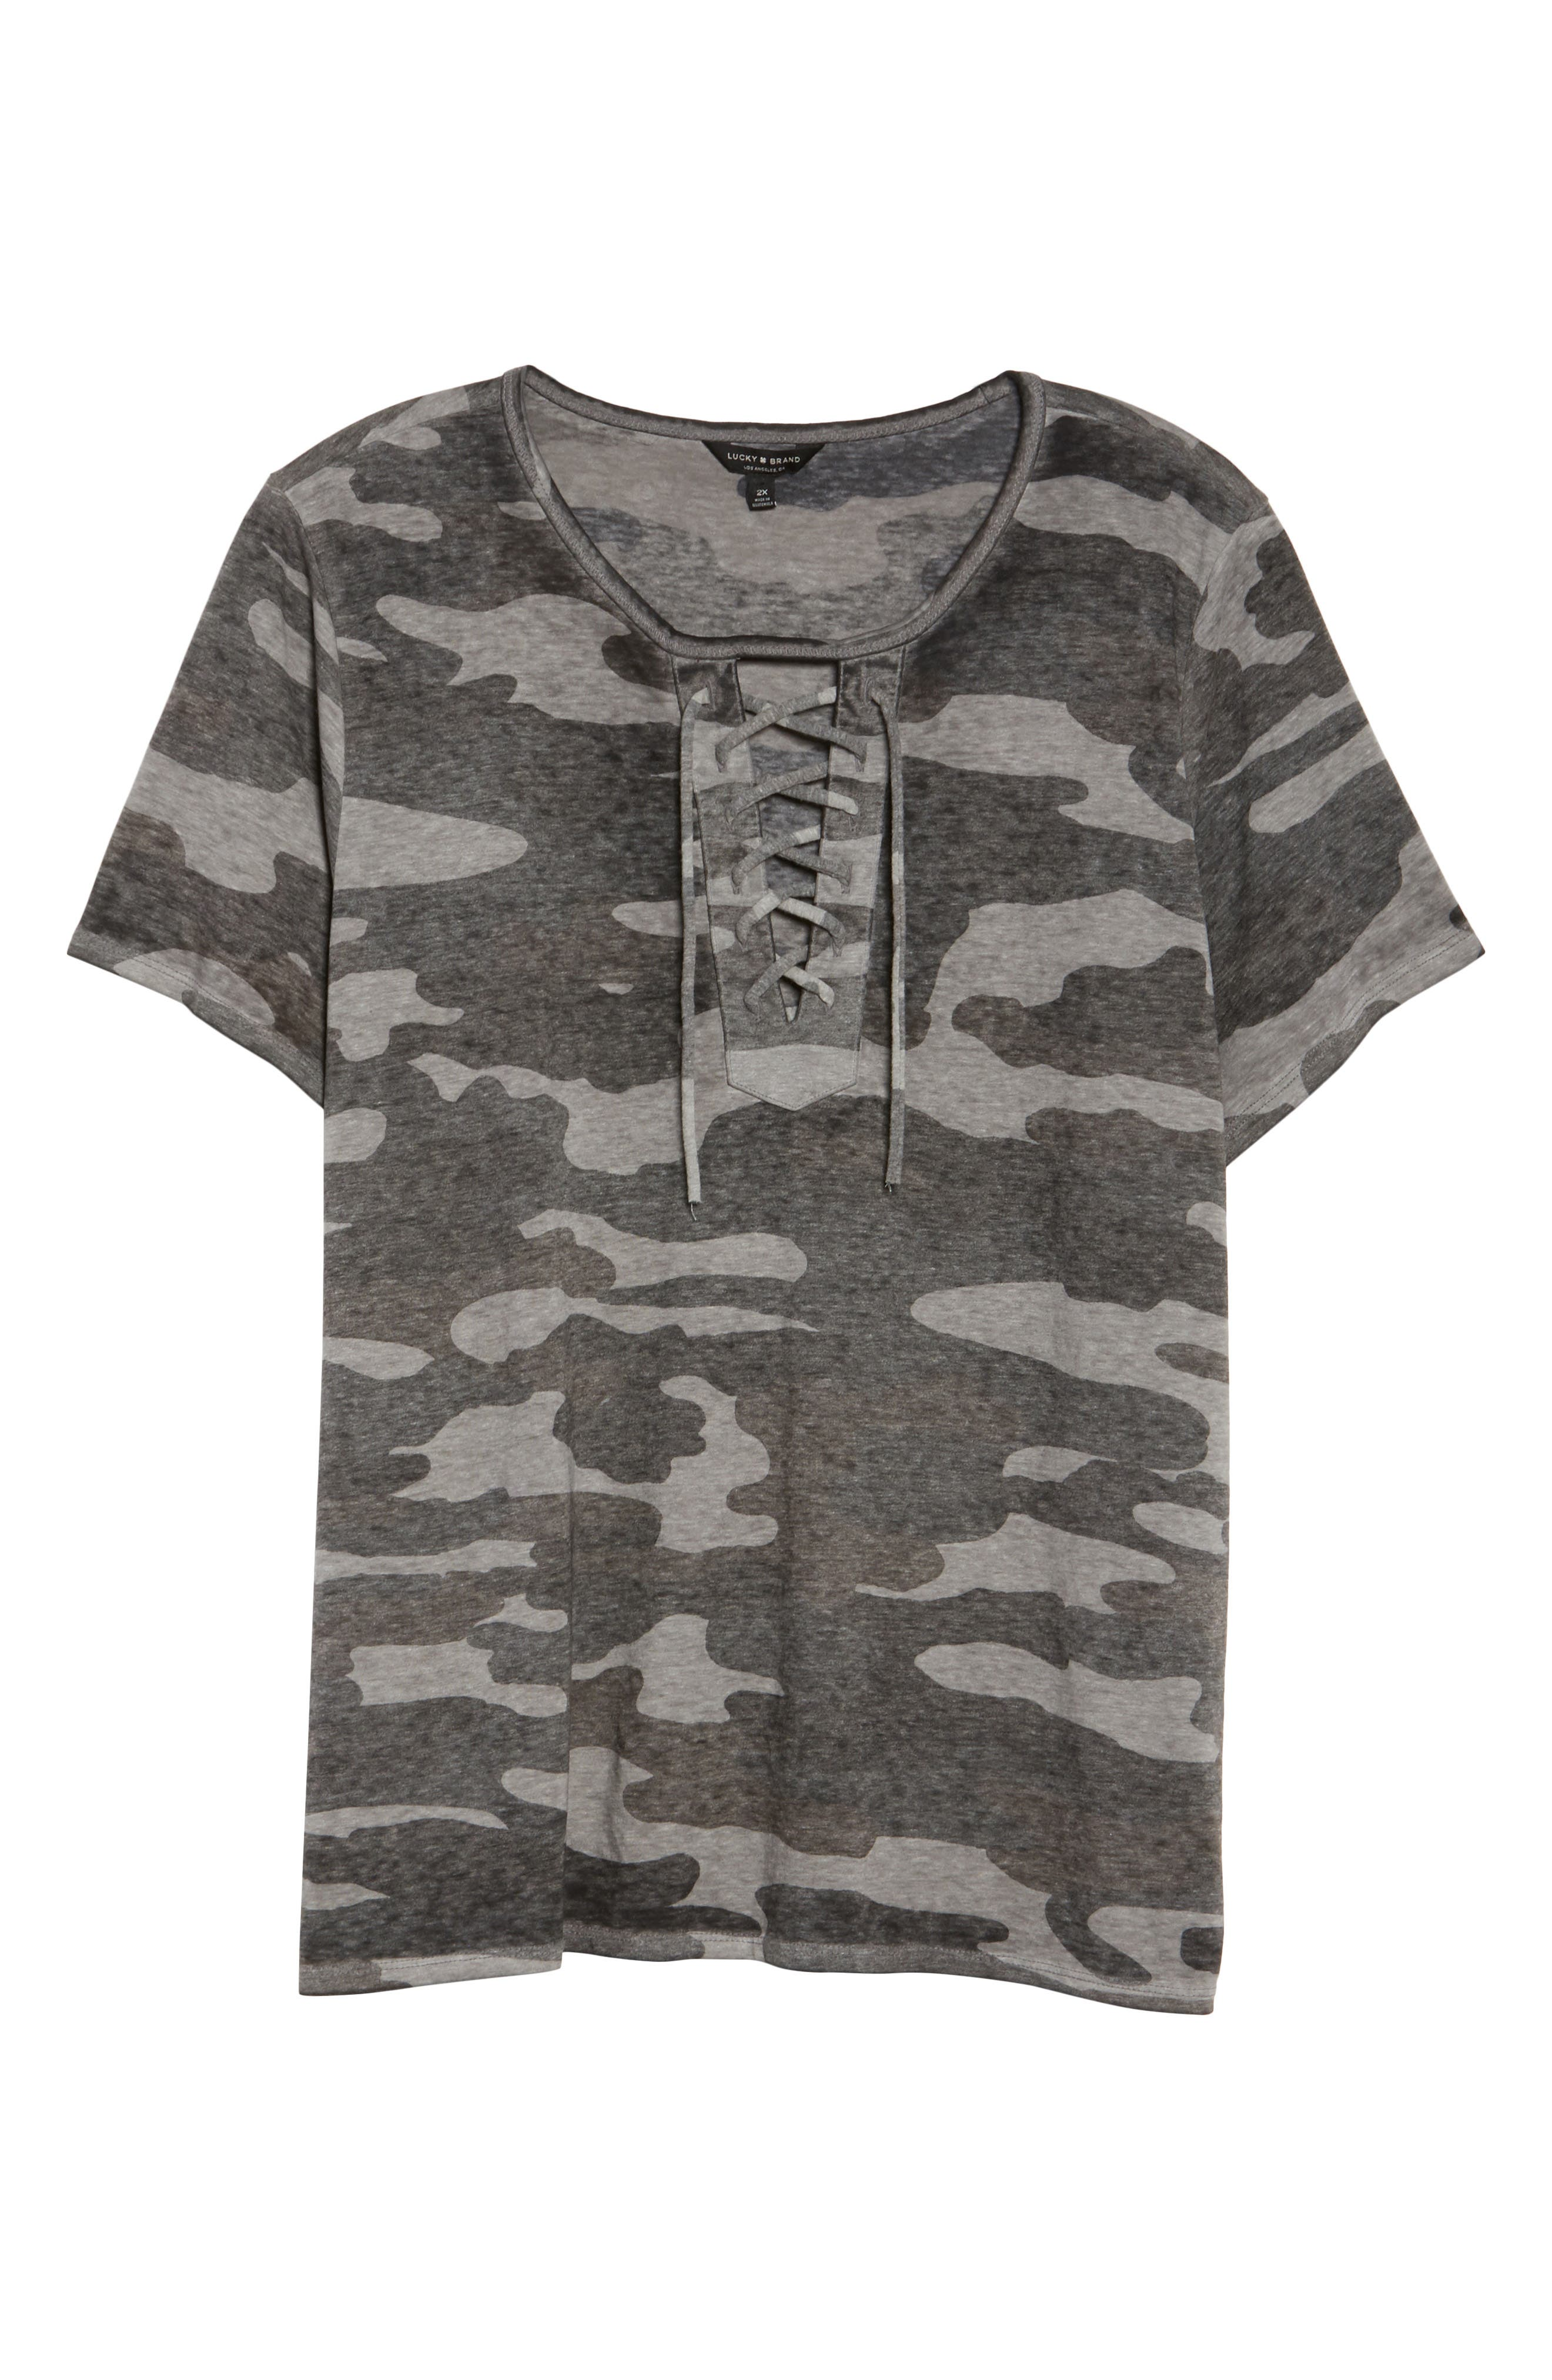 LUCKY BRAND, Lace-Up Camo Tee, Alternate thumbnail 6, color, GREY MULTI